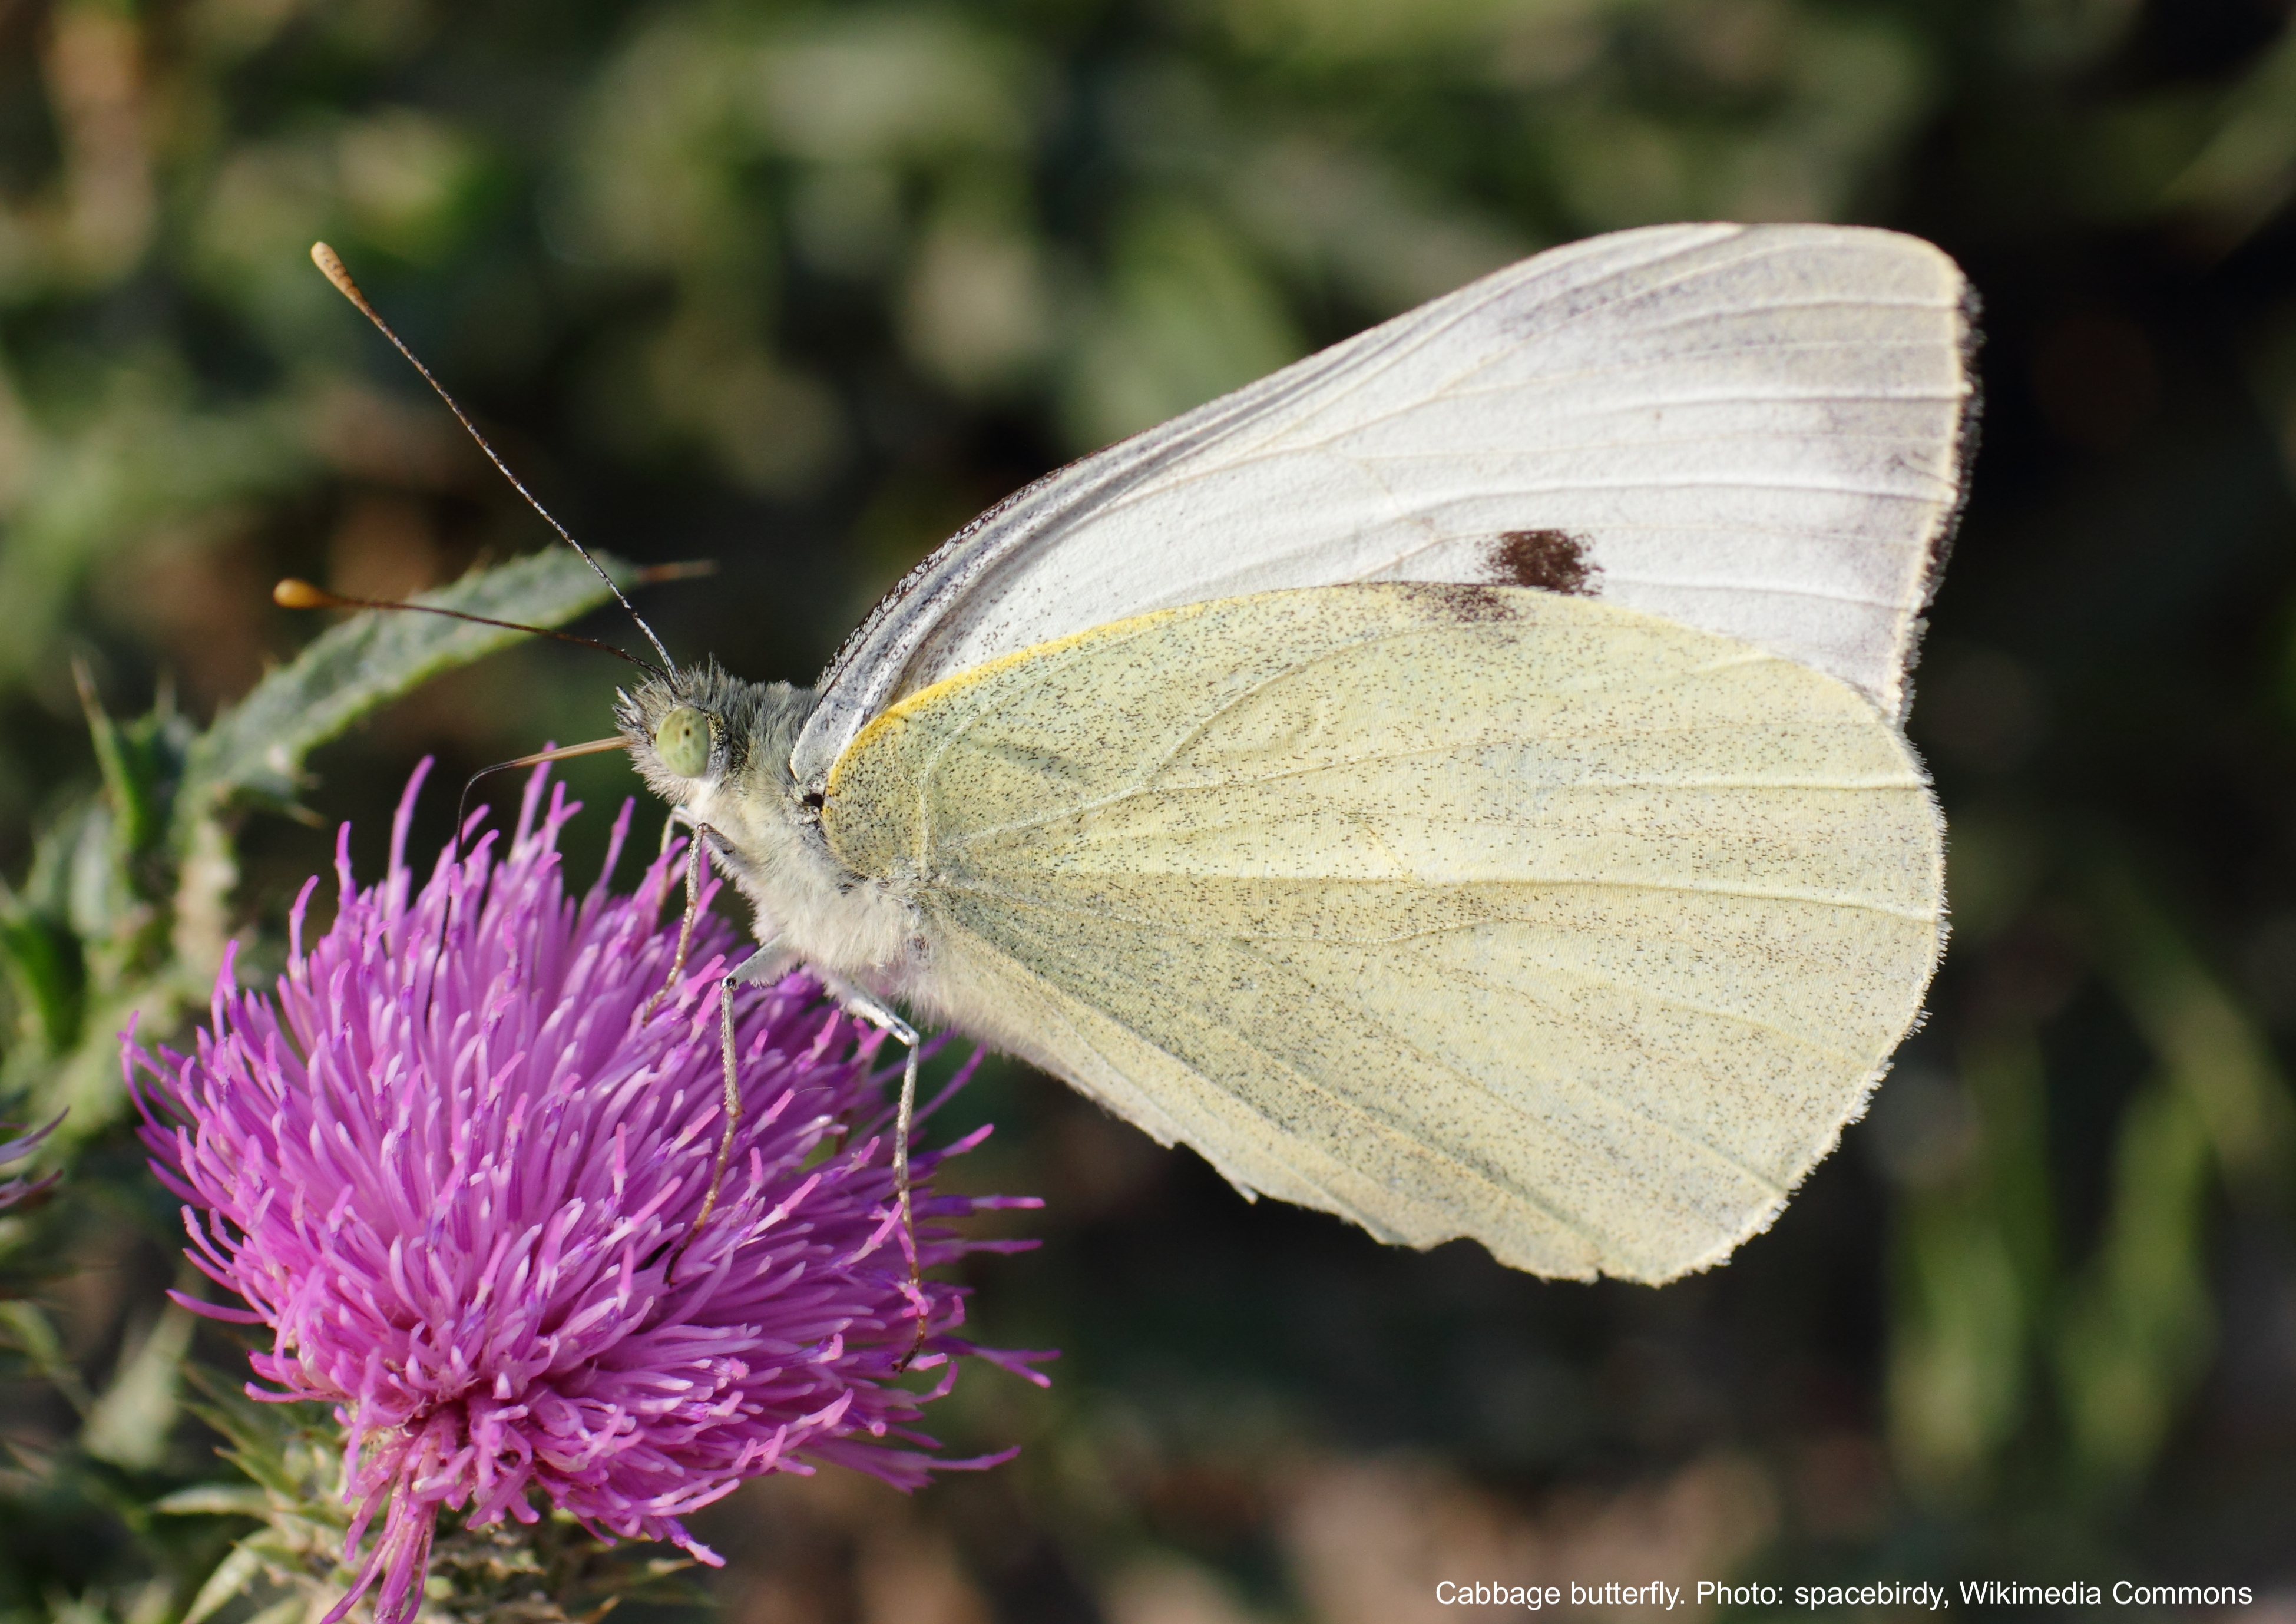 Cabbage butterfly with white wings and black spot.